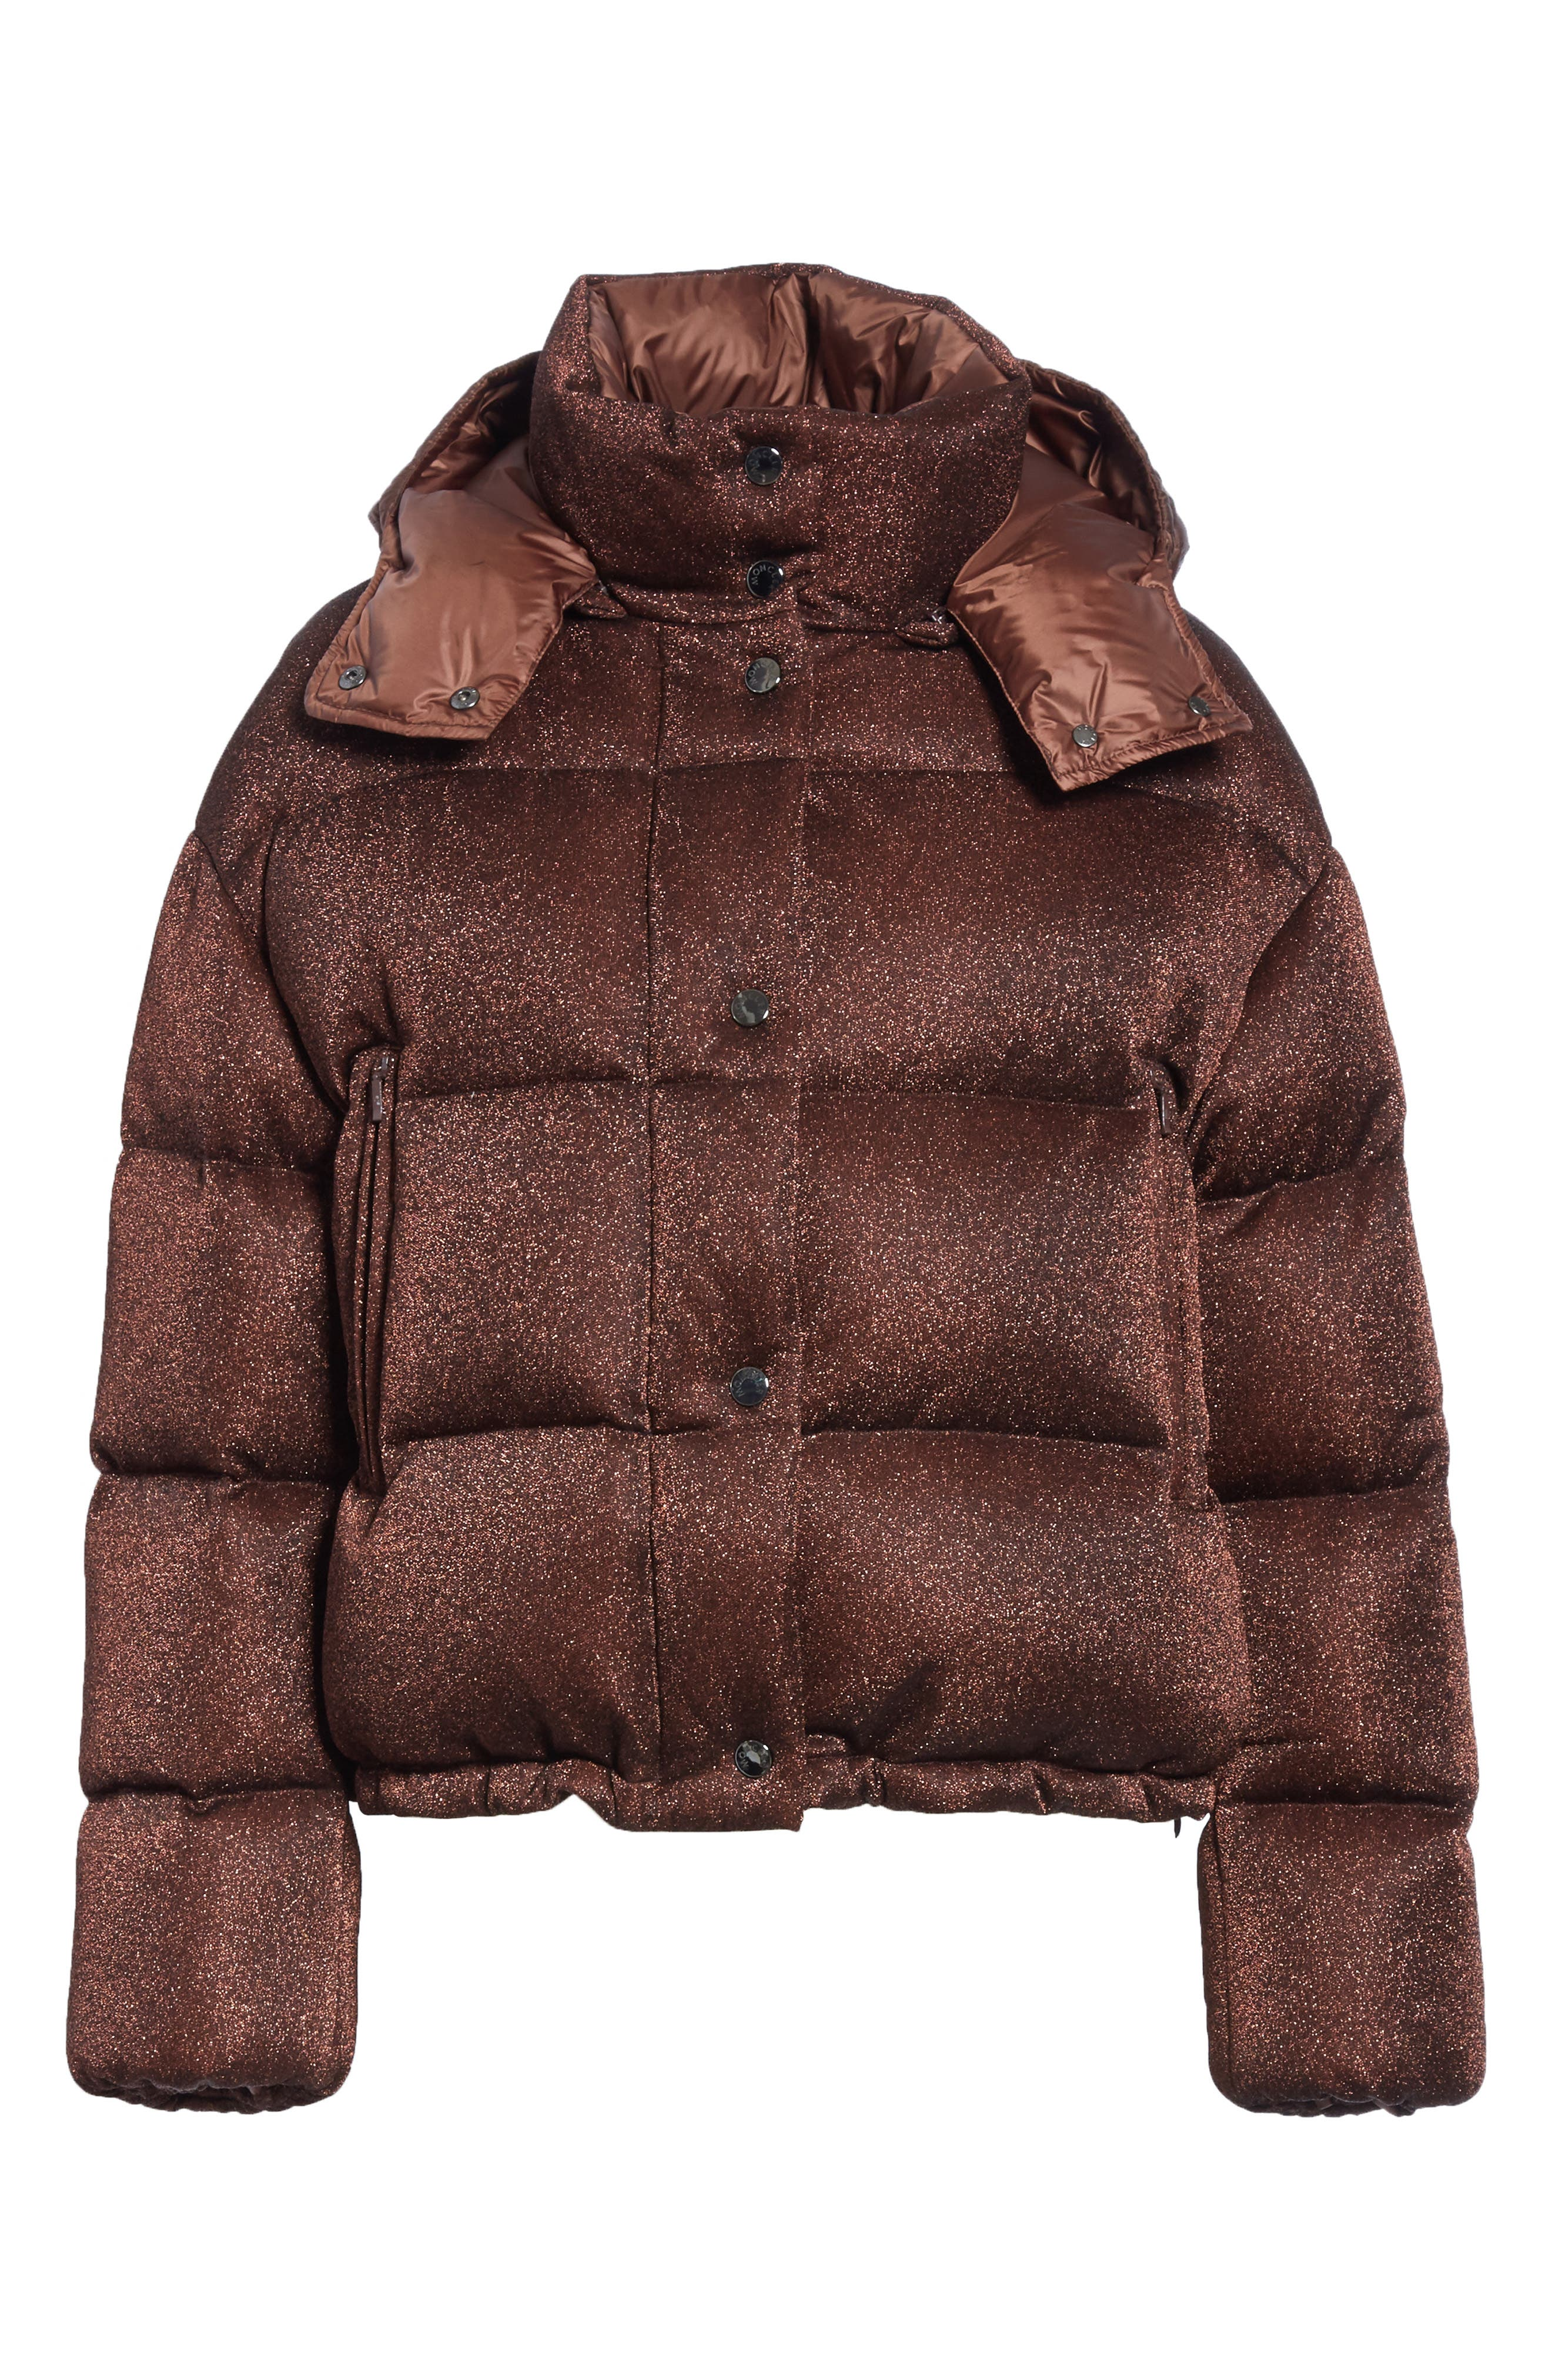 Caille Metallic Quilted Down Jacket,                             Alternate thumbnail 6, color,                             BROWN LUREX